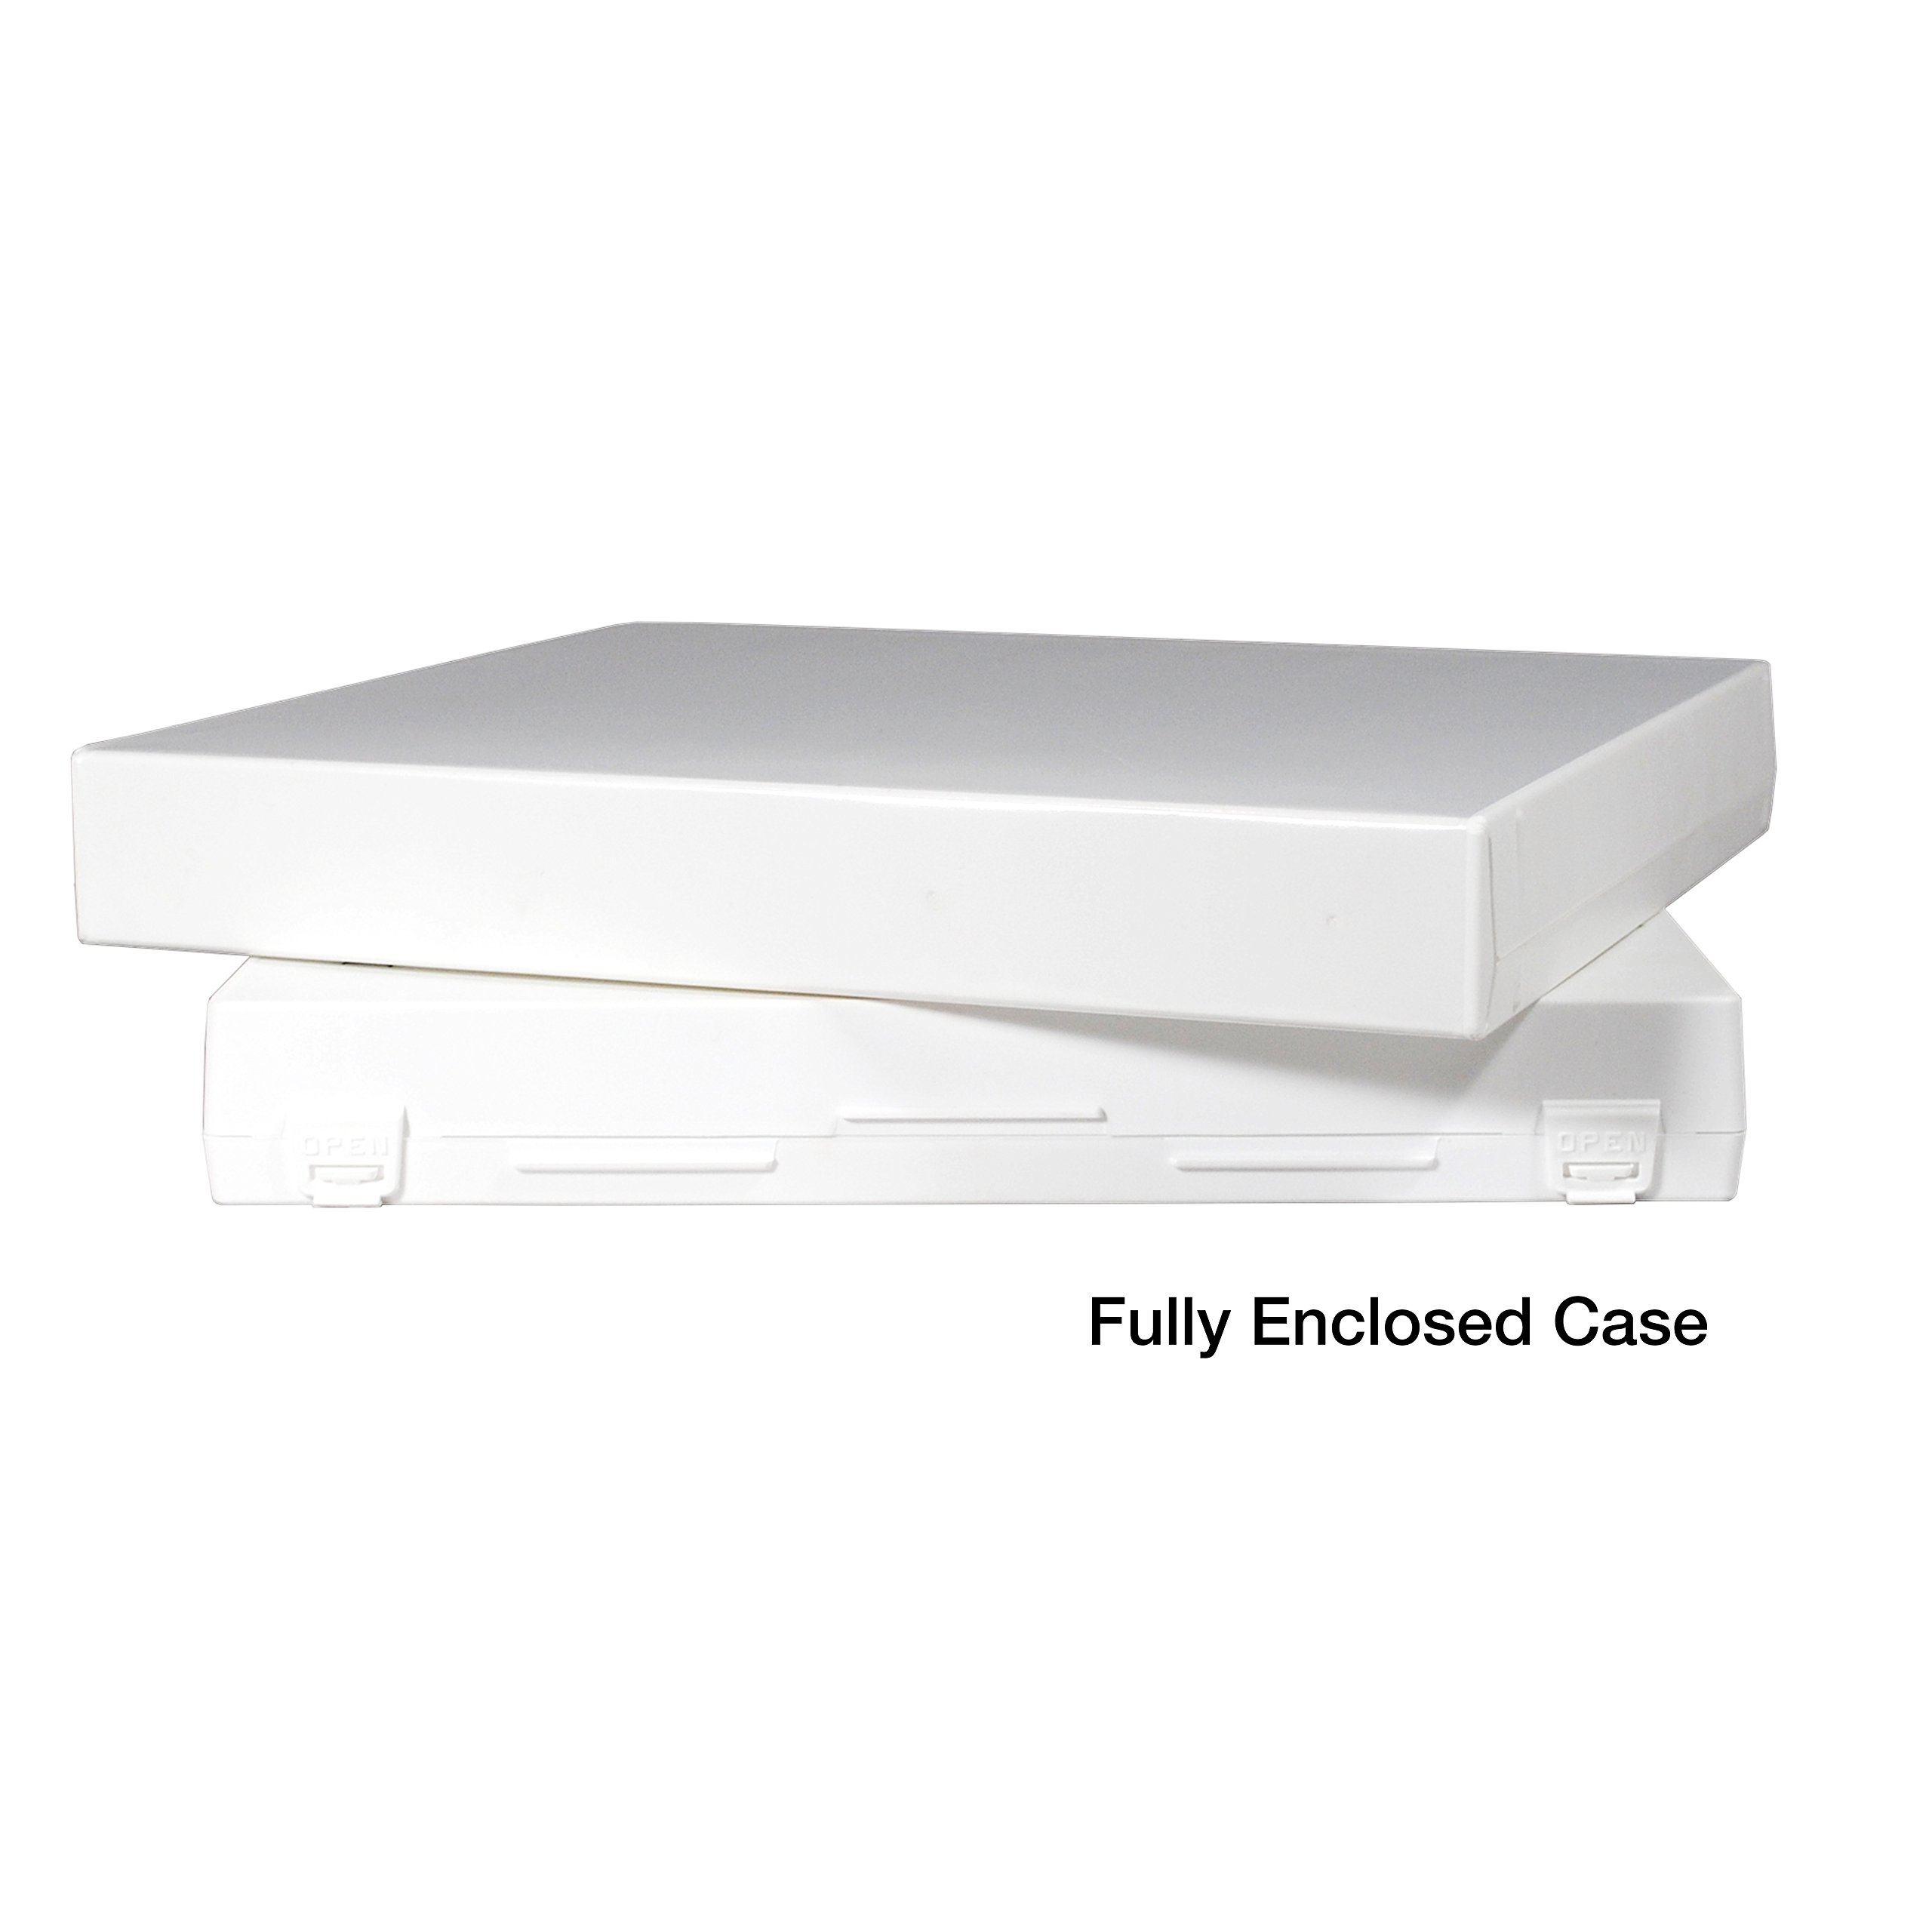 UniKeep Case/Box- 1.5 Inch Spine - Without Clear Overlay - No Rings - Pack of 15 by UniKeep